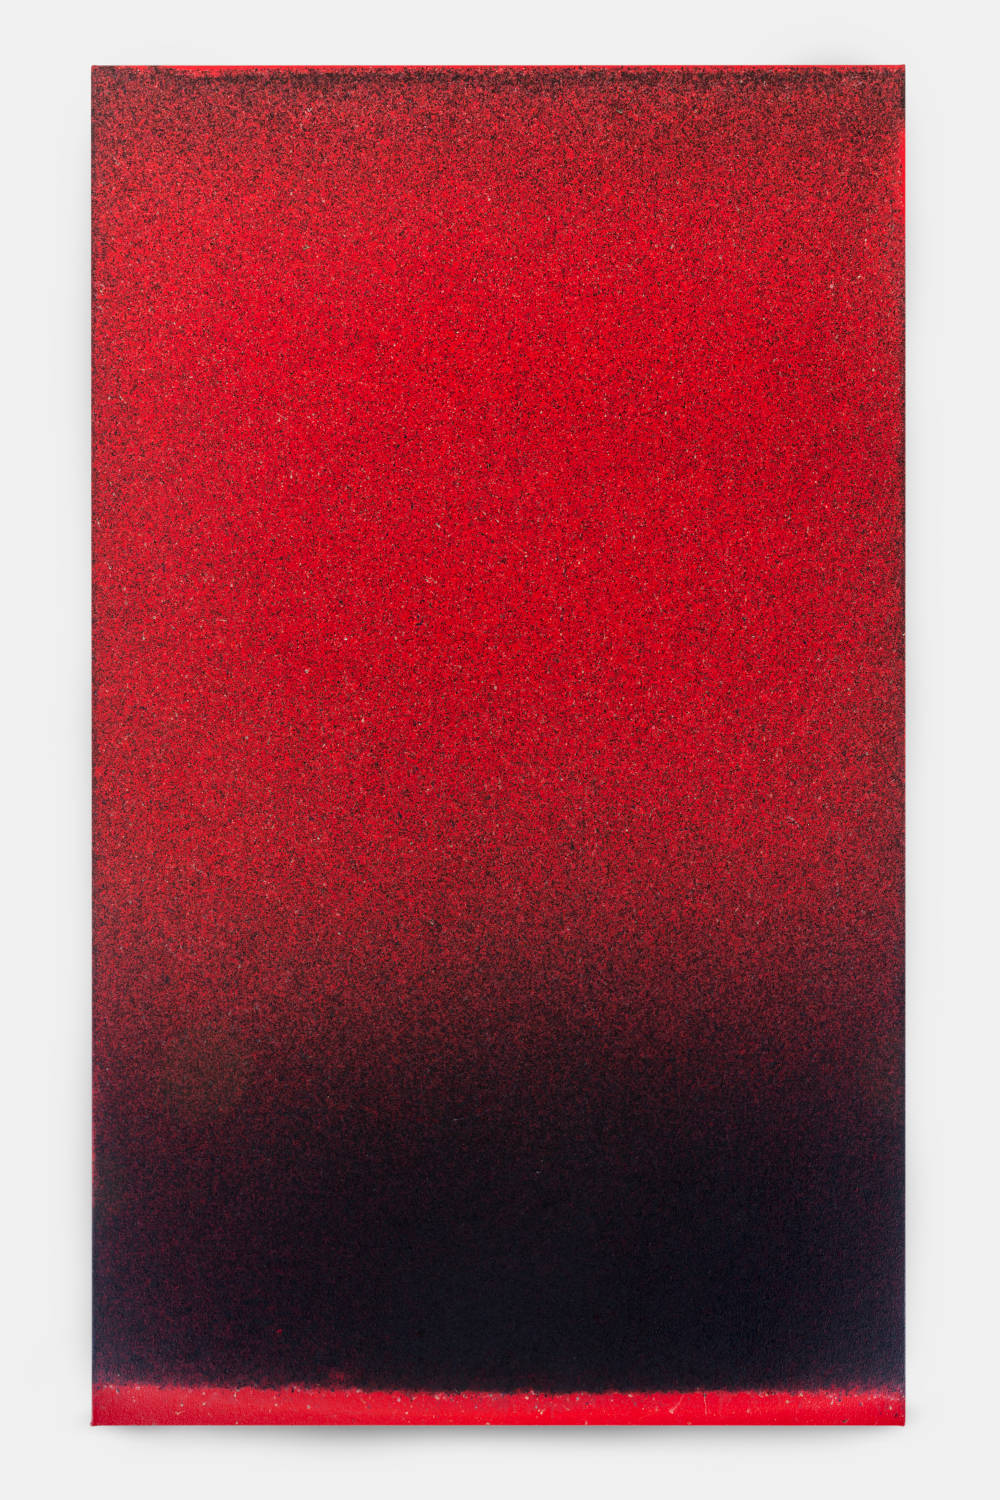 John Knuth (b. 1978), Redhook Blackout, 2019. Acrylic/Flyspeck on canvas 60 x 36 inches